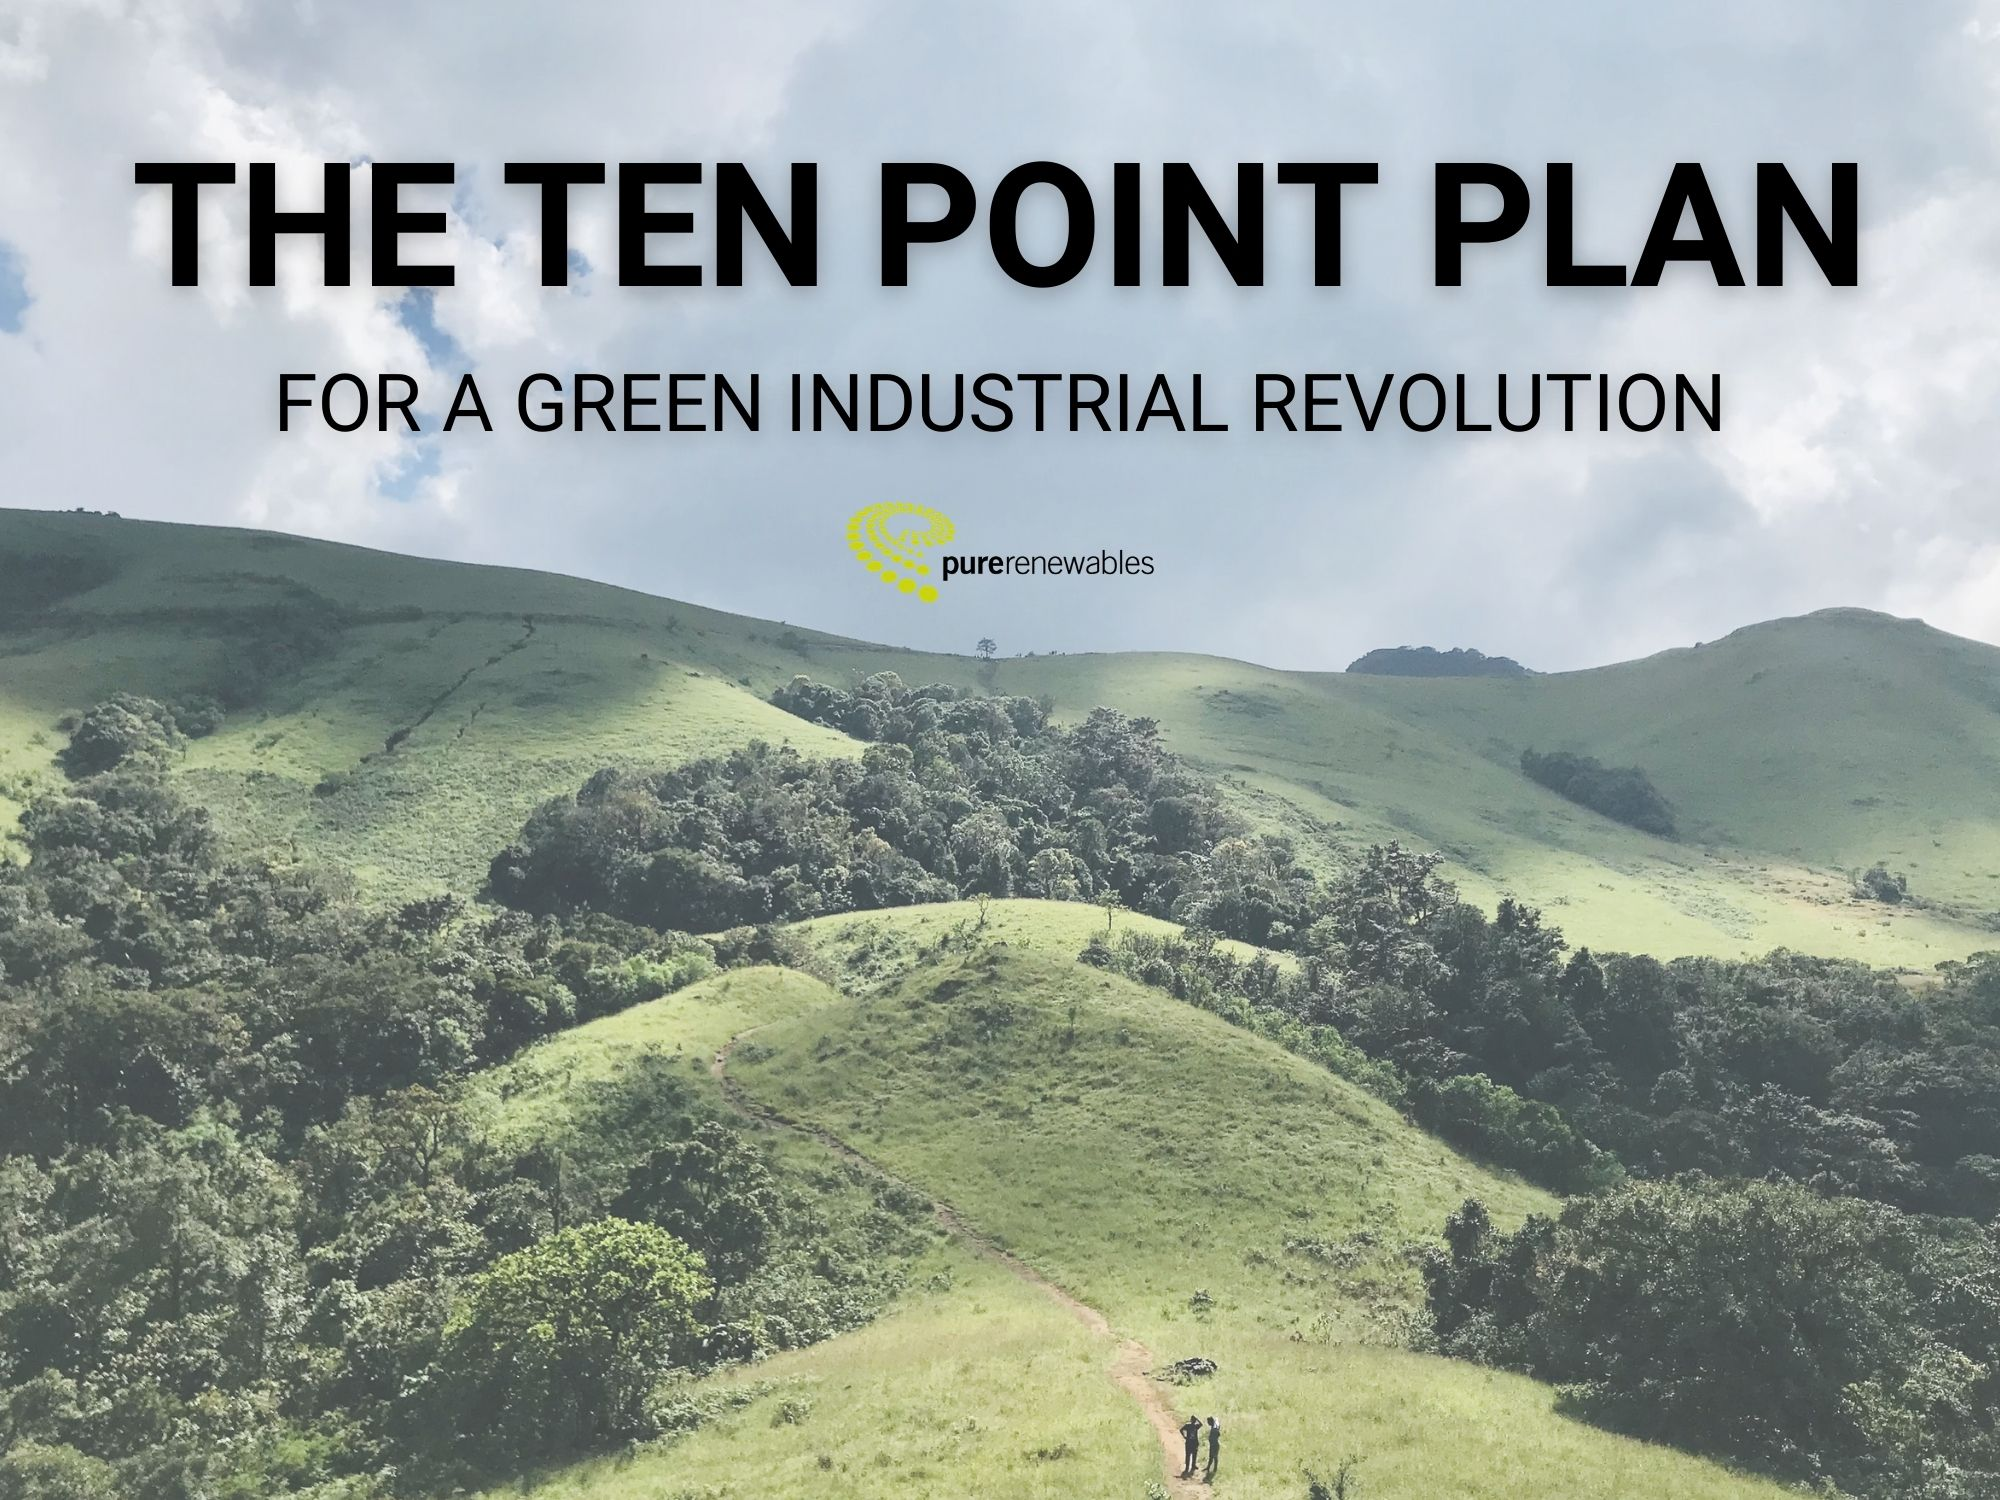 The Ten Point Plan